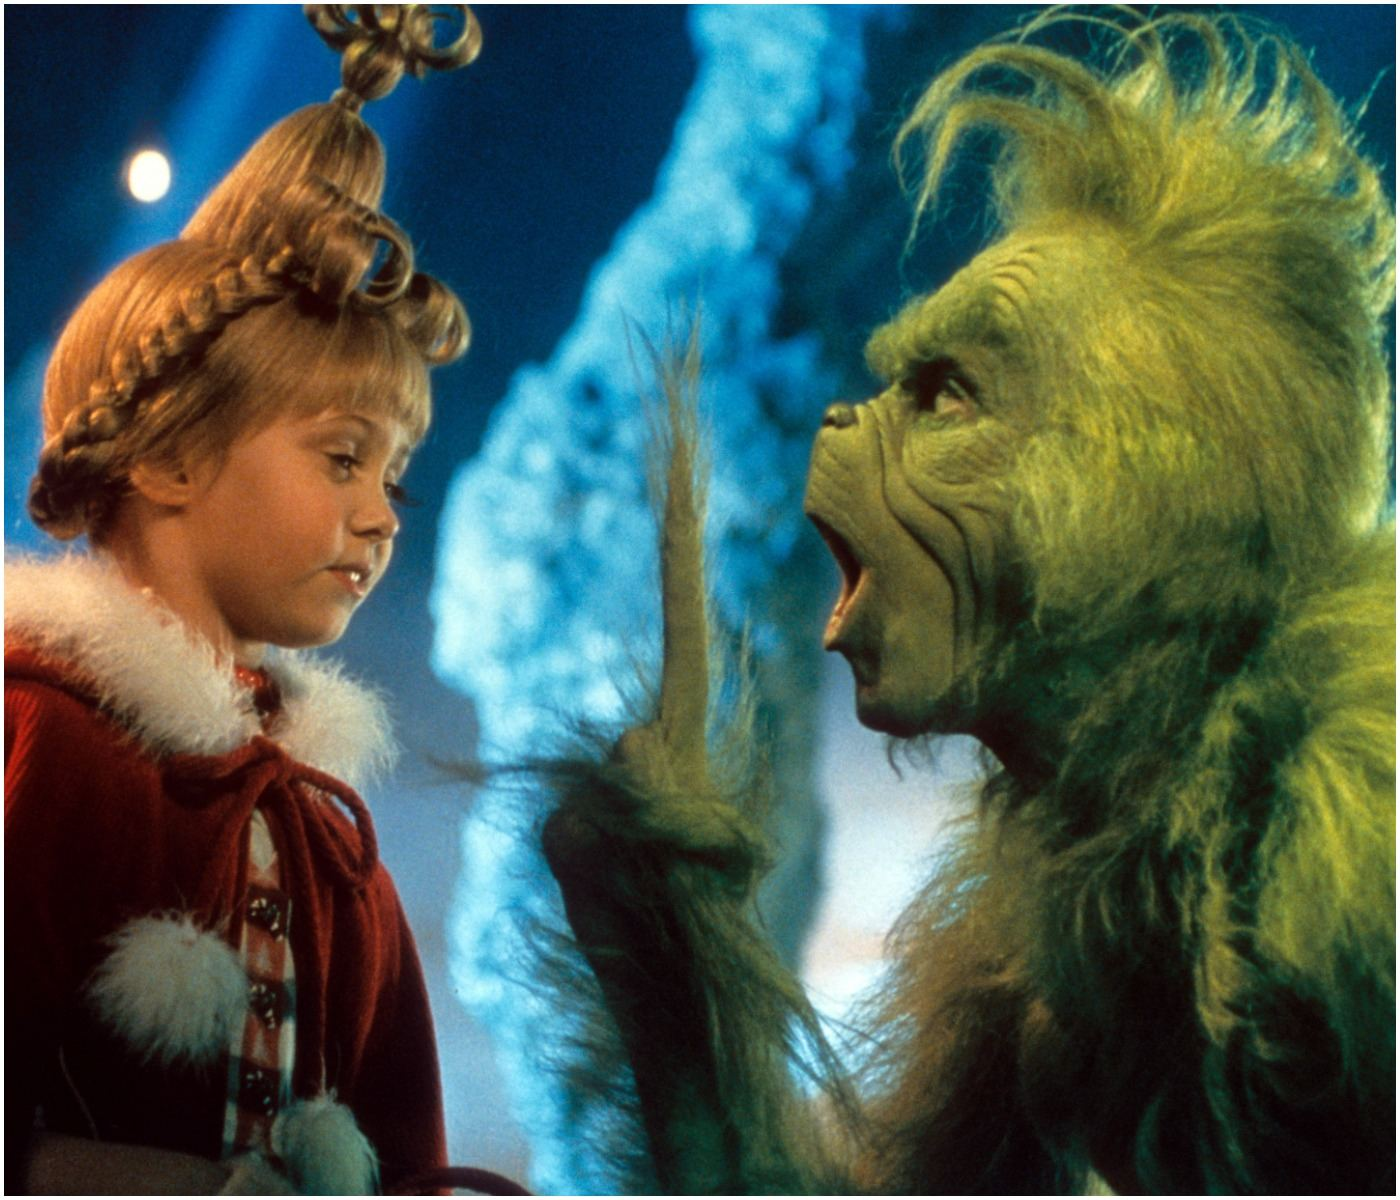 Quotes from How the Grinch Stole Christmas!